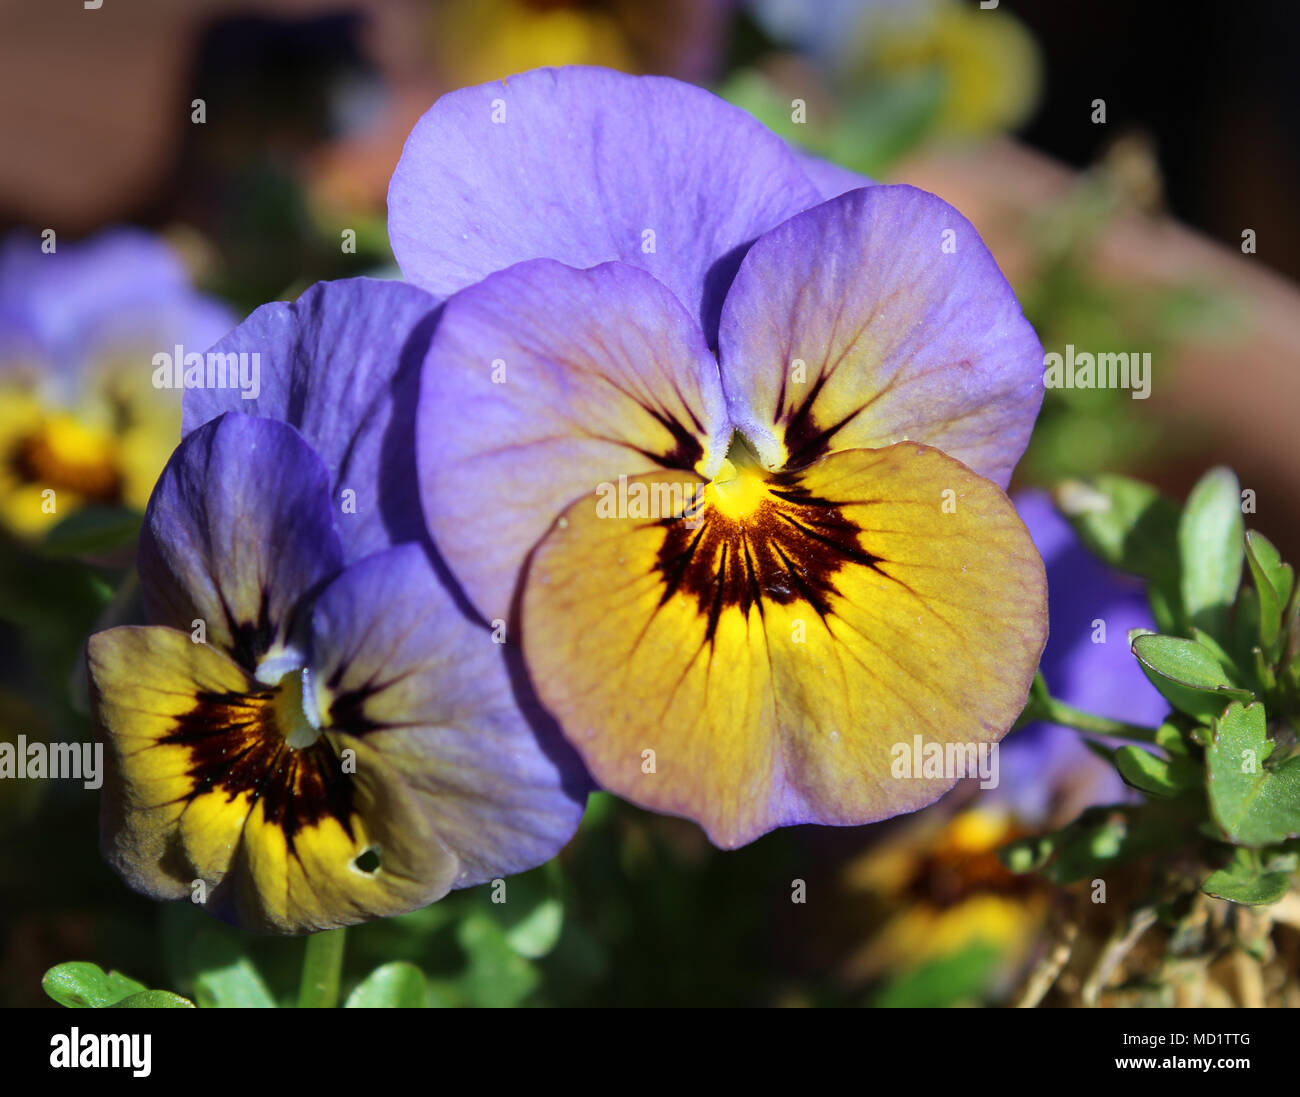 Beautiful And Unusual Violet Blue Colored Viola Flower Sunlit And